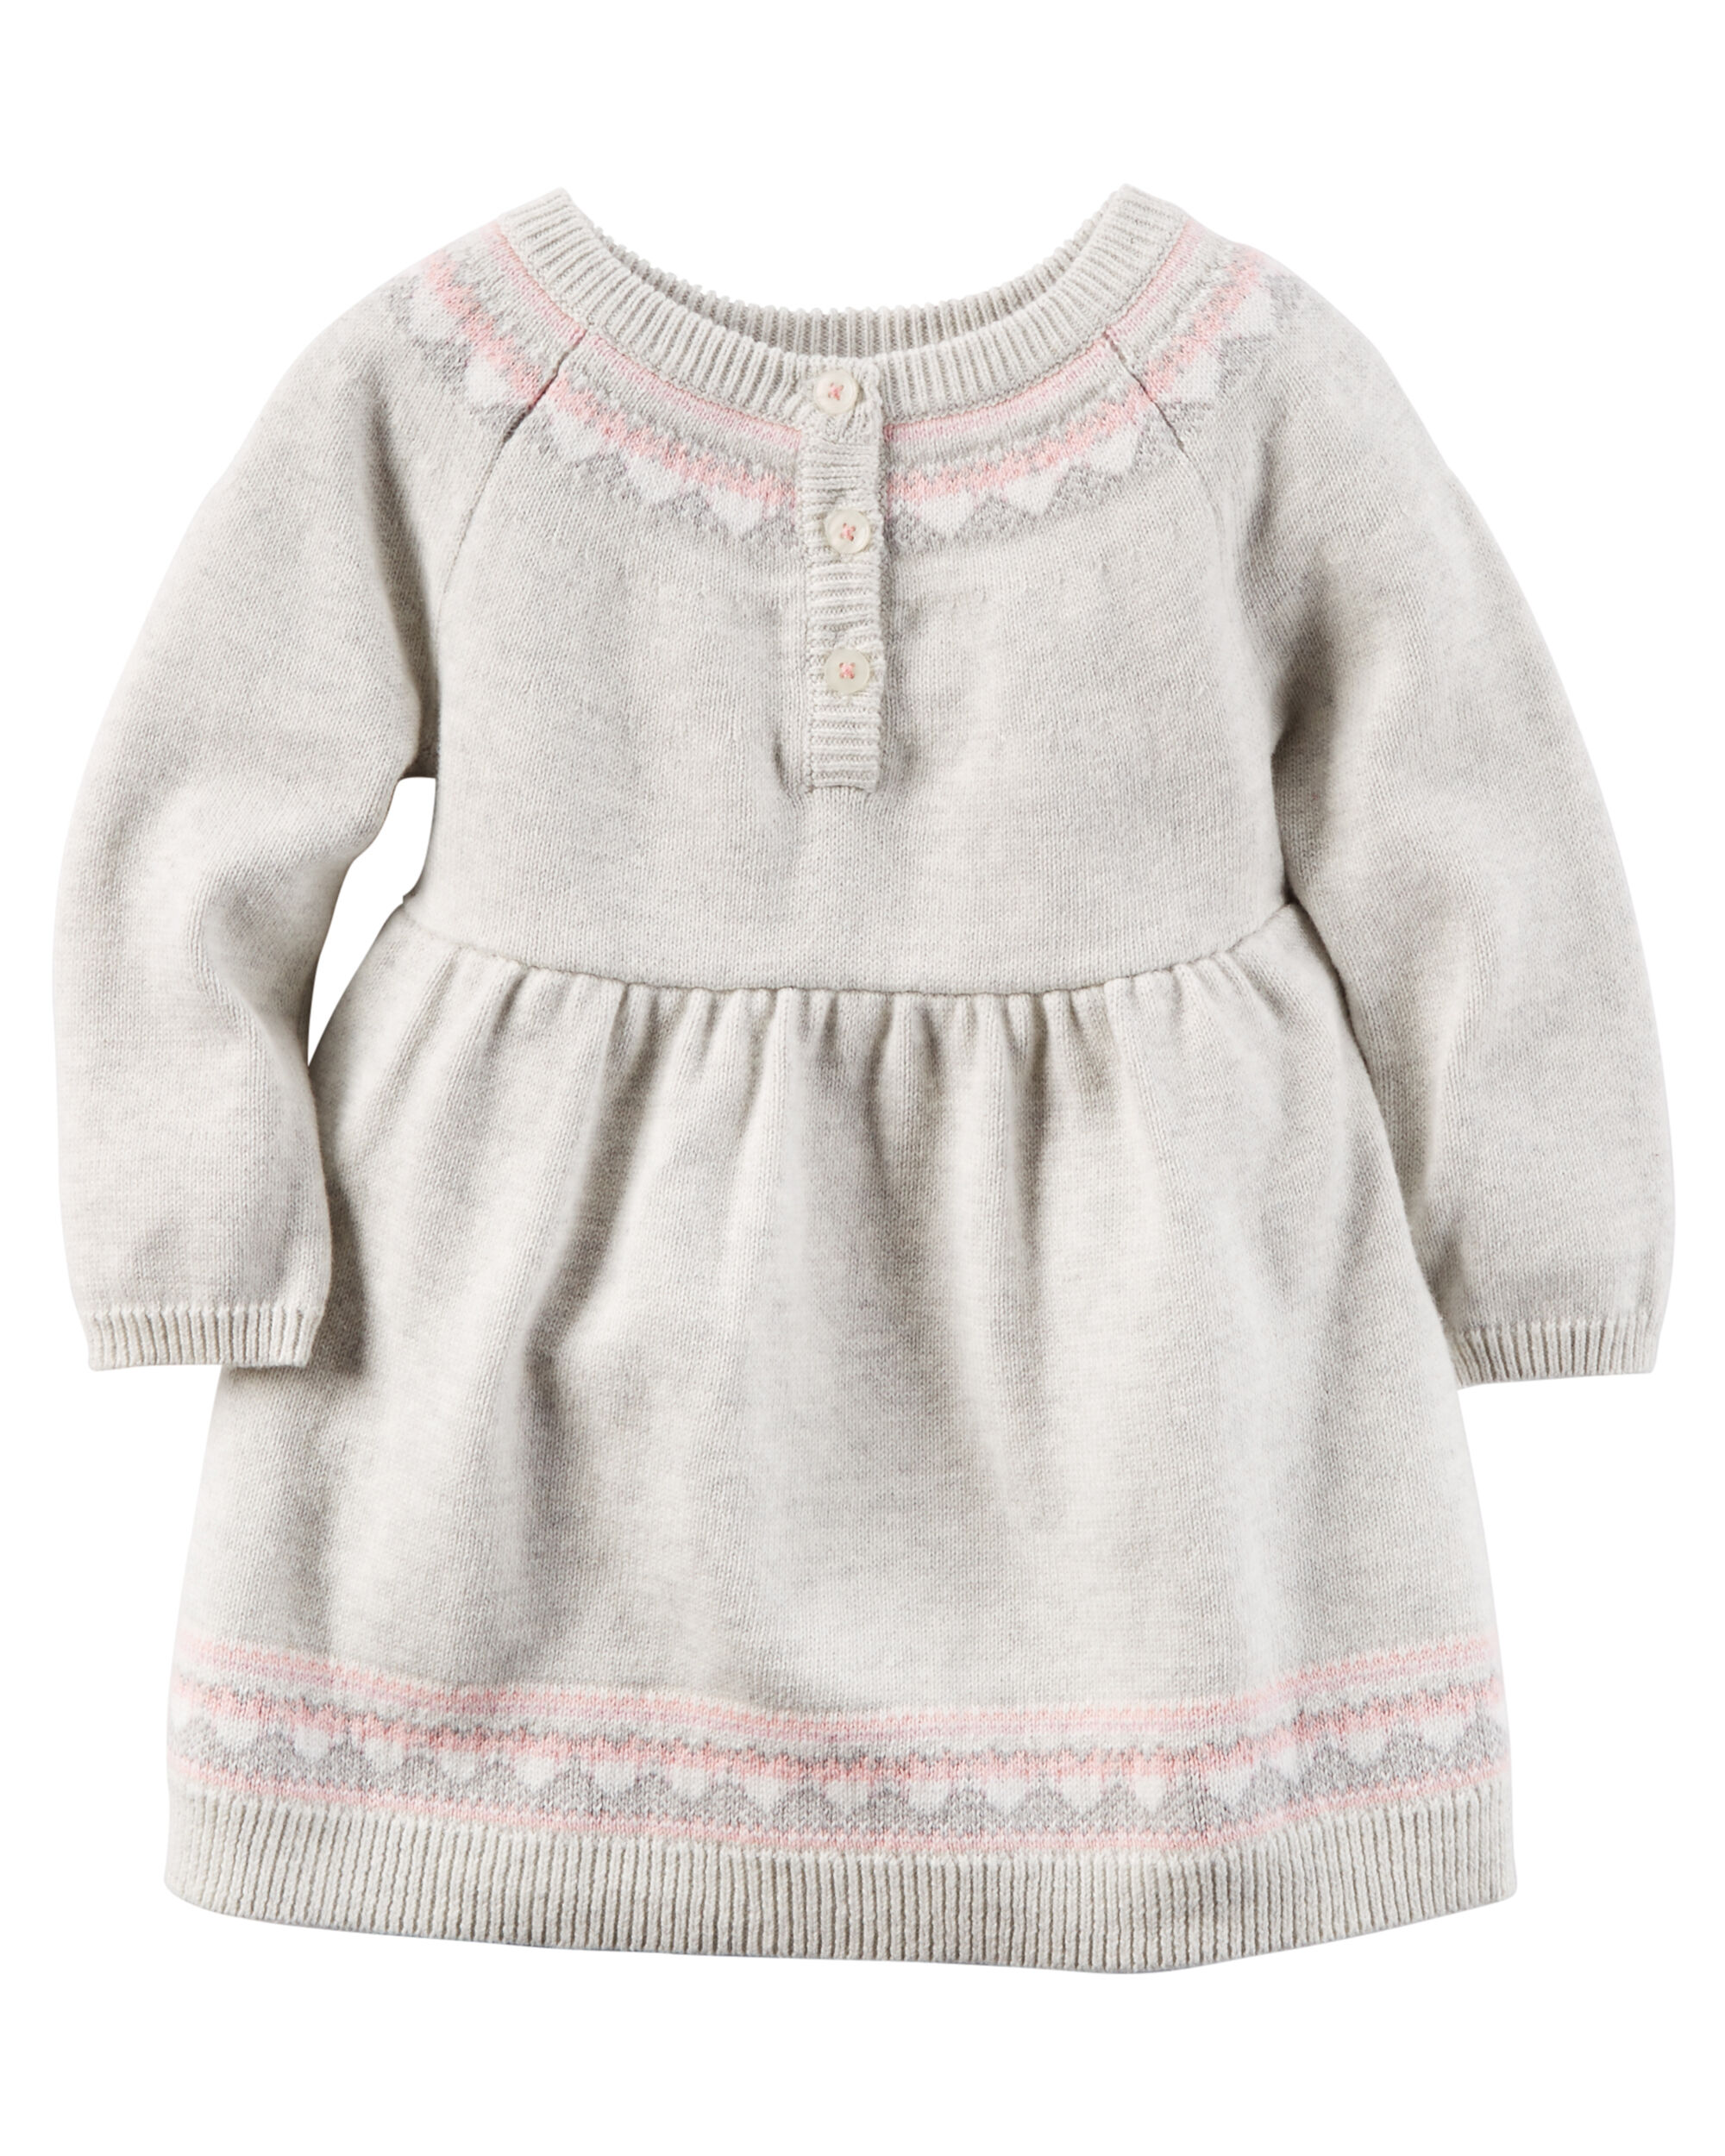 Sweater Dress Carters Com